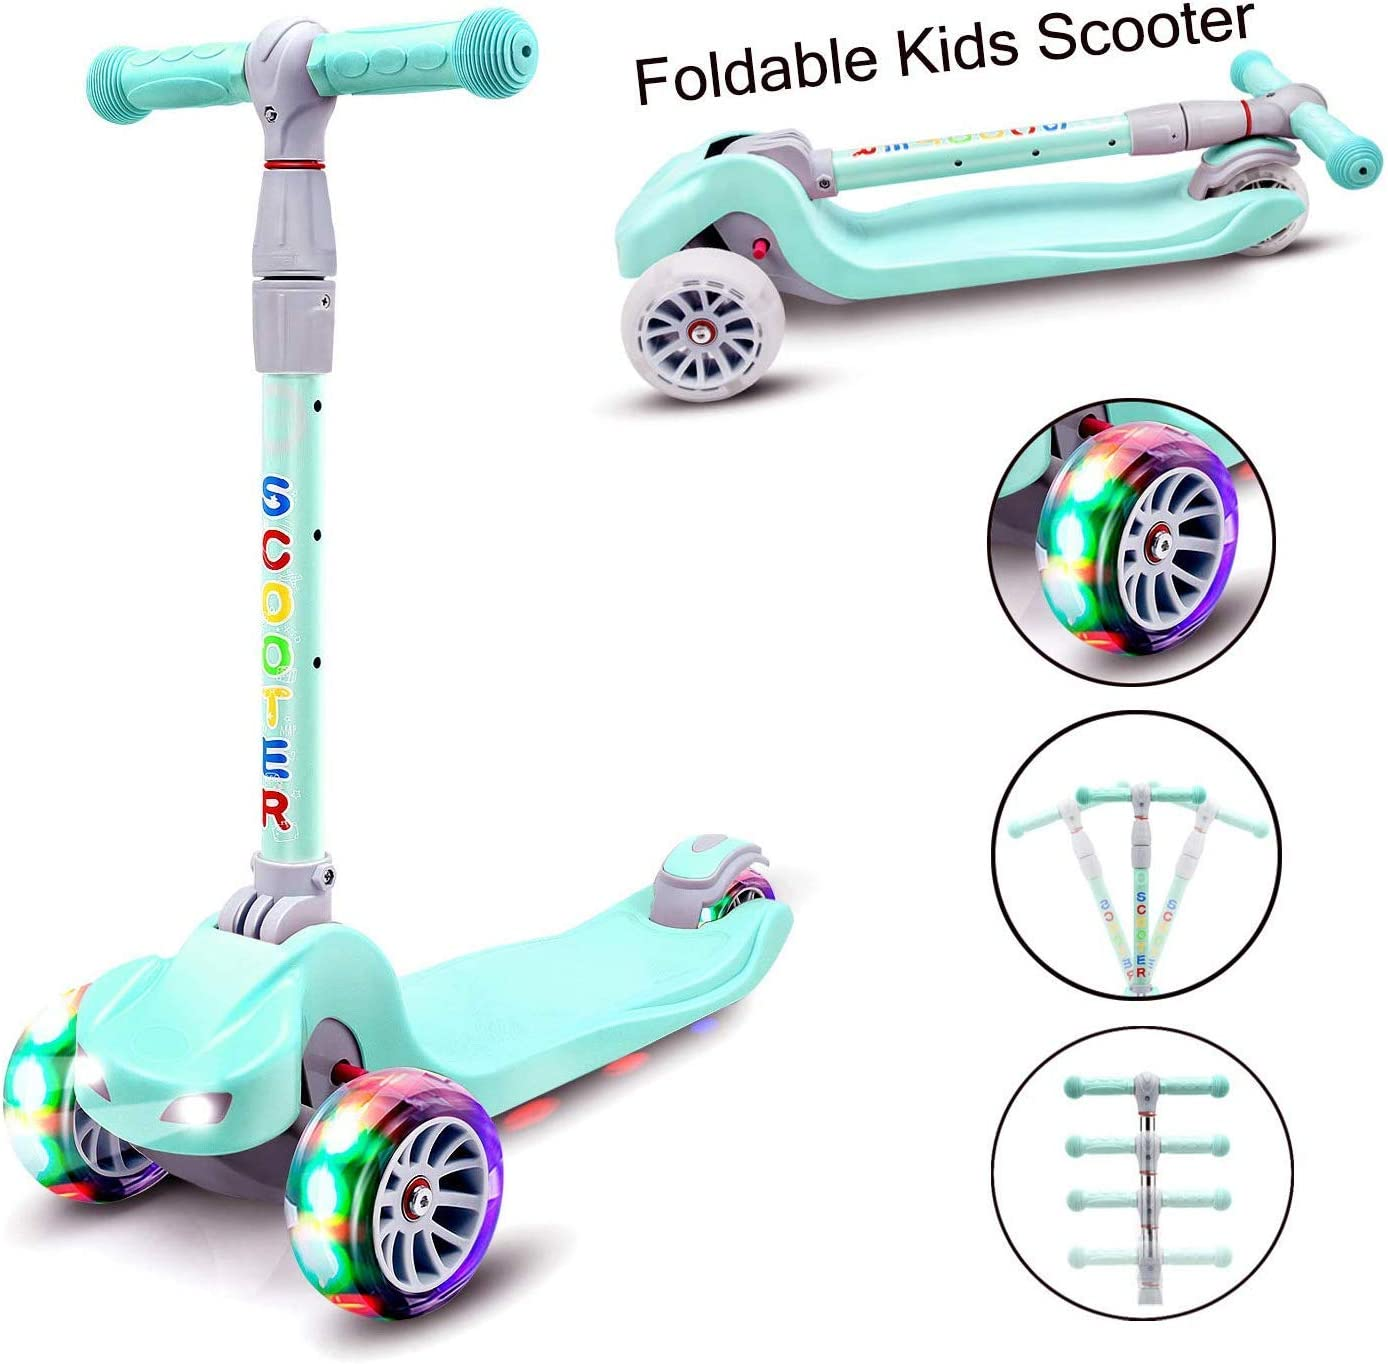 YX Scooter for Kids Toddlers Scooter 3 Wheel Scooter for Boys Girls 4 Adjustable Height Lean to Steer with PU Flashing Wheels Kids Foldable Scooter for Children from 3 to 12 Years Old